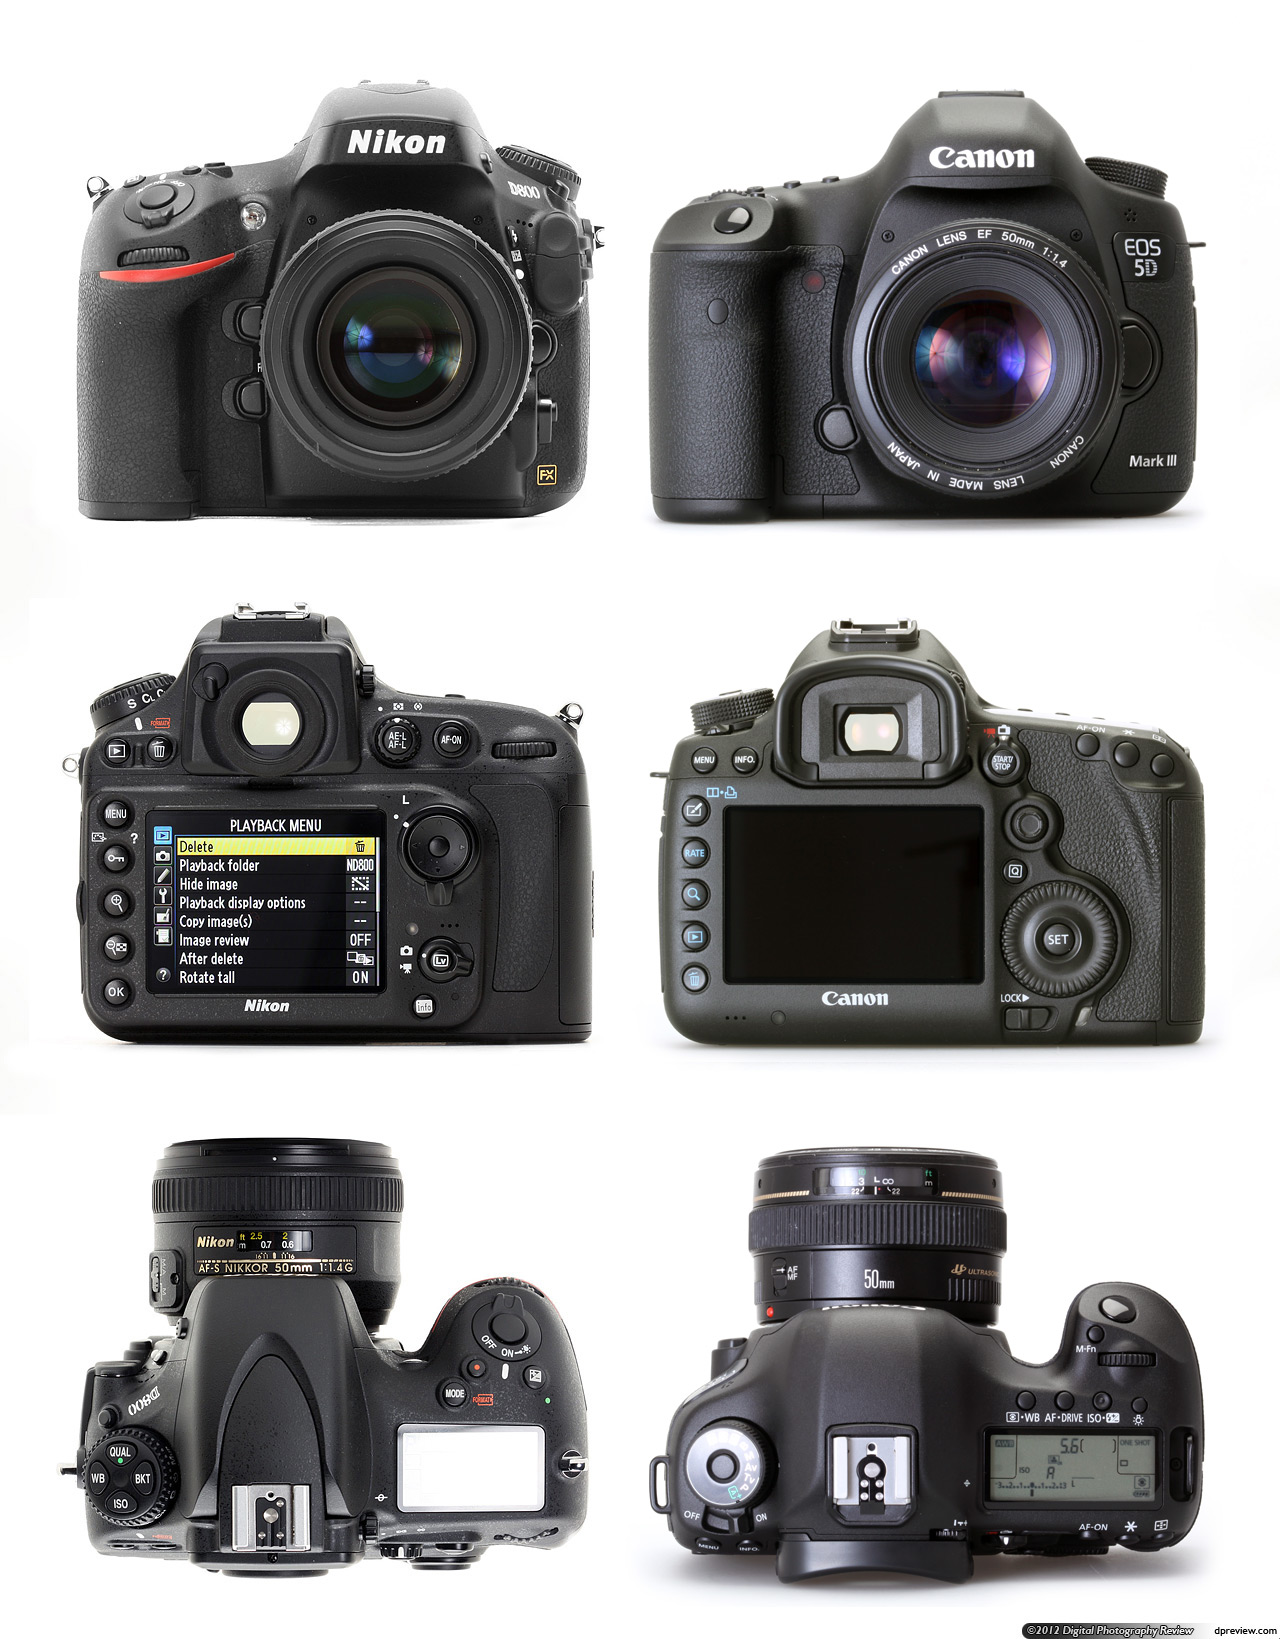 Camera Nikon D800 Dslr Camera nikon d800 review digital photography compared to the canon eos 5d mark iii